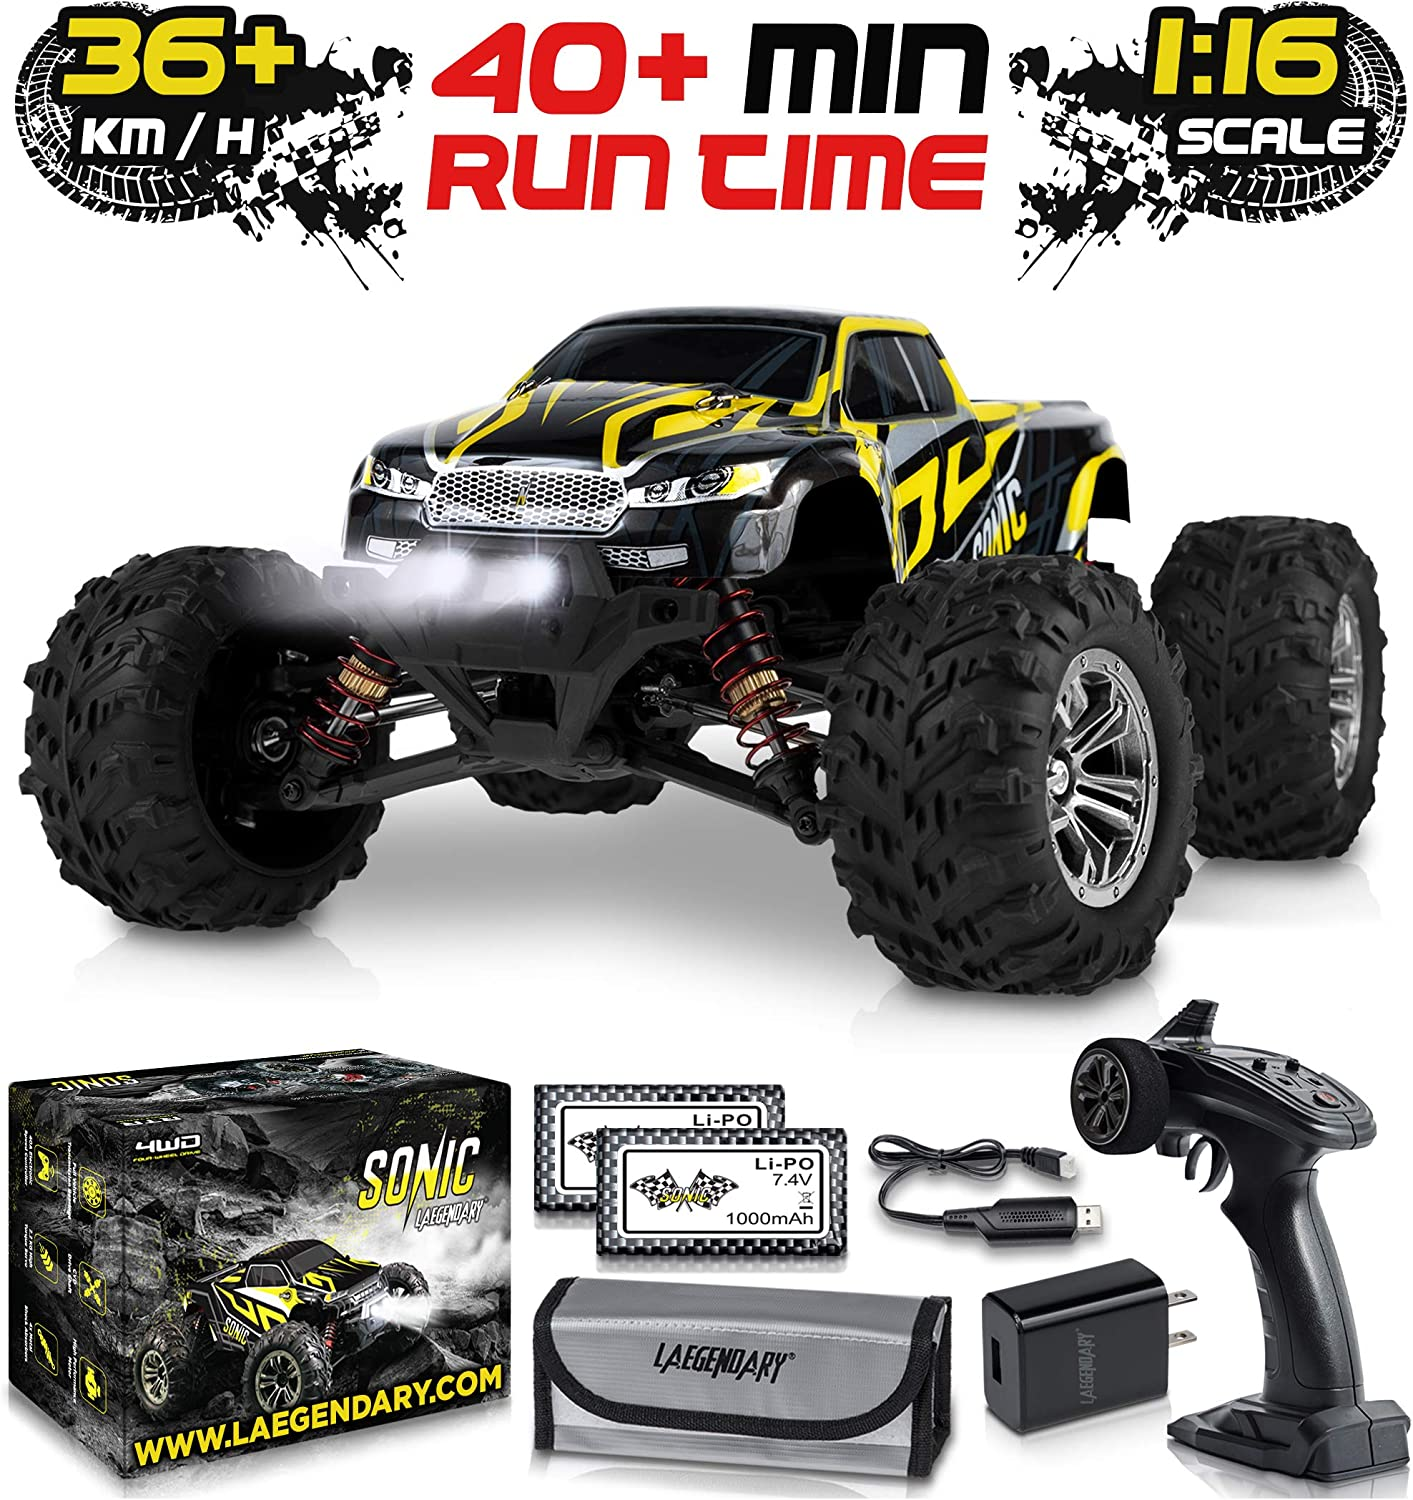 1:16 Scale Large RC Cars 36+ kmh Speed - Boys Remote Control Car 4x4 Off Road Monster Truck Electric - All Terrain Waterproof Toys Trucks for Kids and Adults - 2 Batteries + Connector for 35+ Min Play